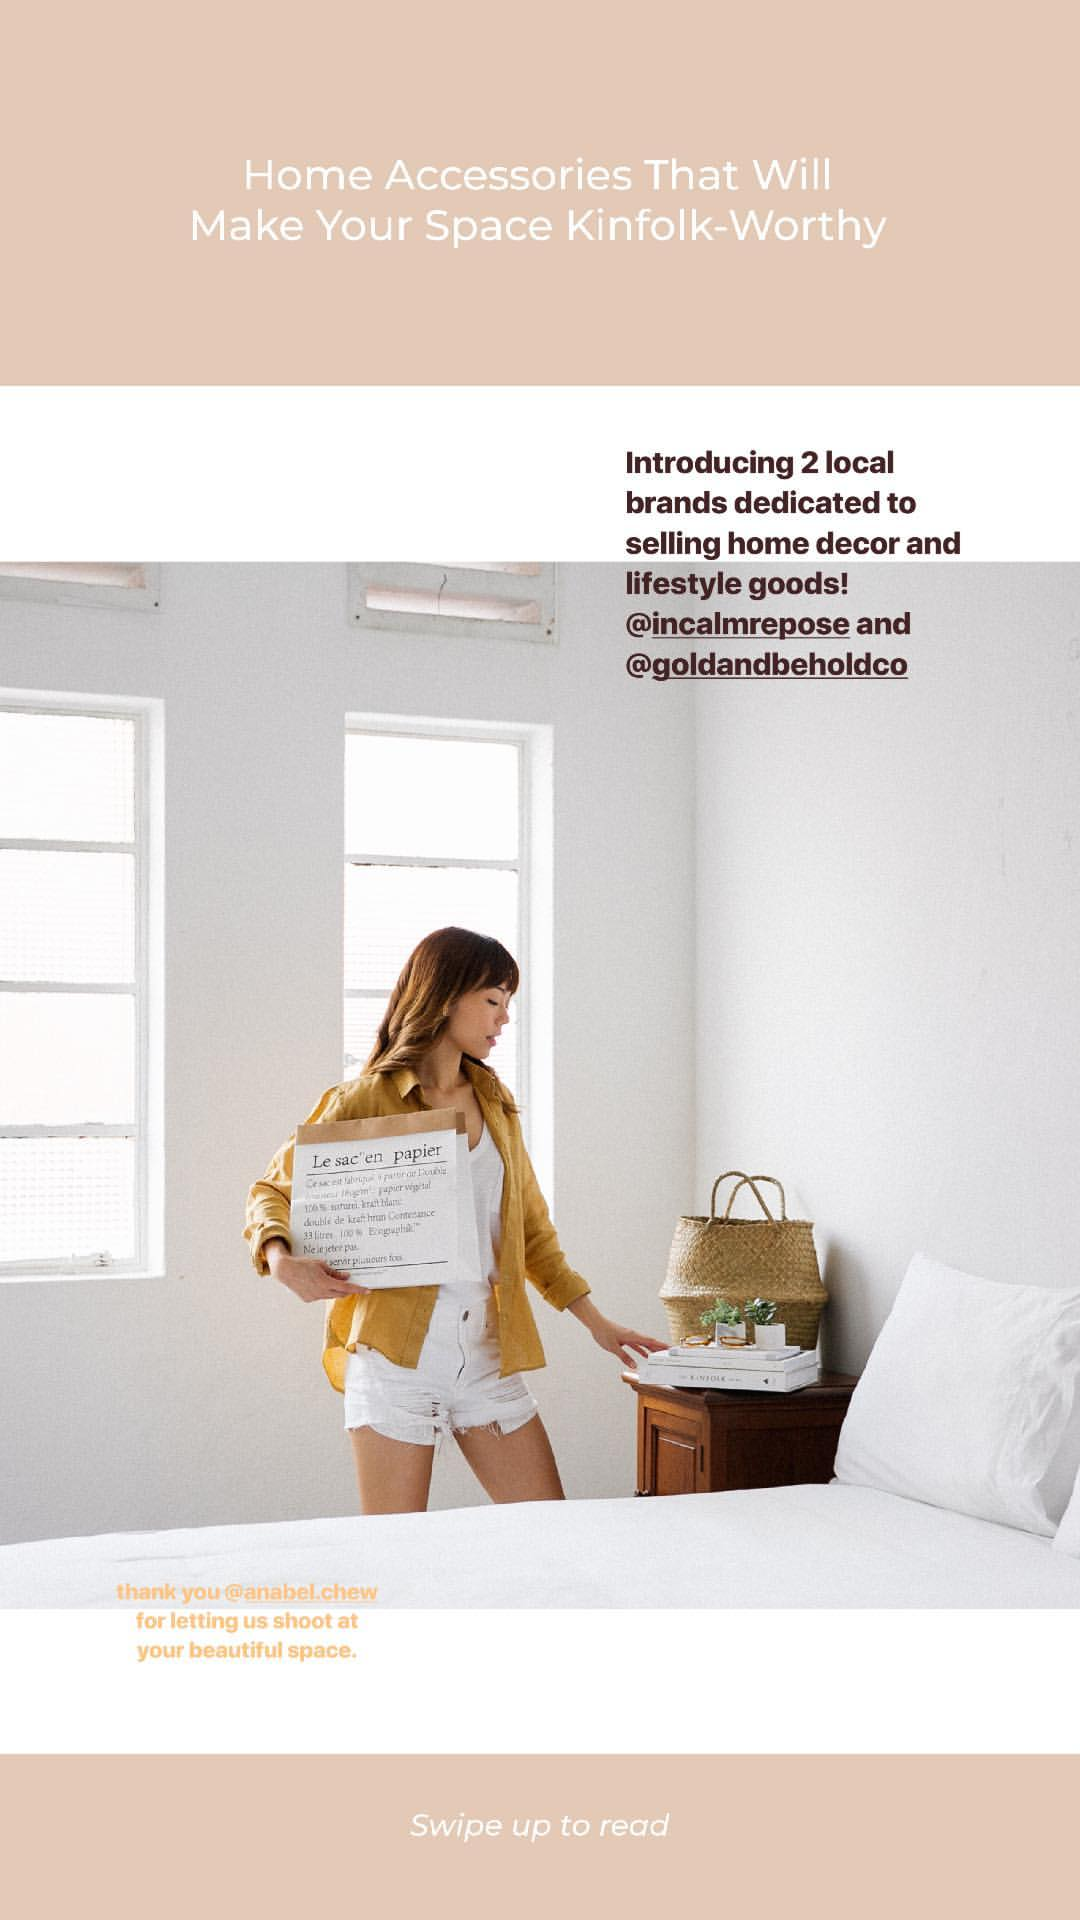 Dreachong_Instagram Story_07May18_Photo Post 5_1 Webpage_Home Accessories That Will Make Your Space Kinfolk-Worthy.jpg